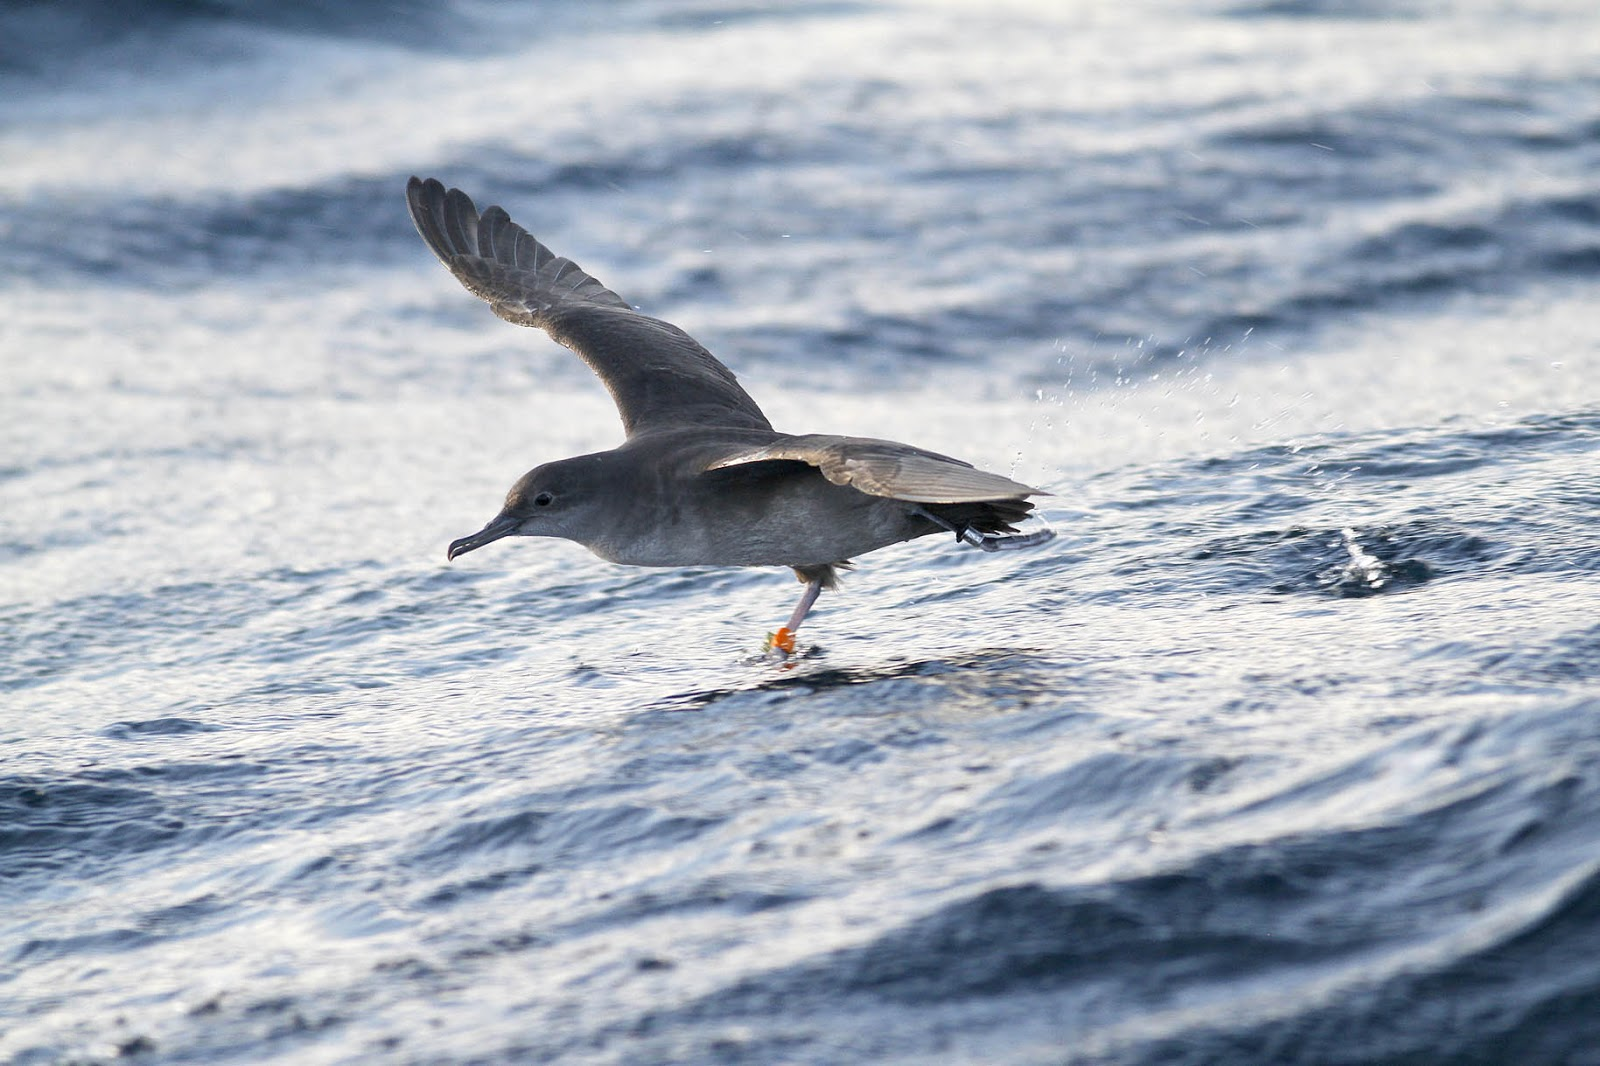 Europe's rarest seabird 'could be extinct within 60 years'